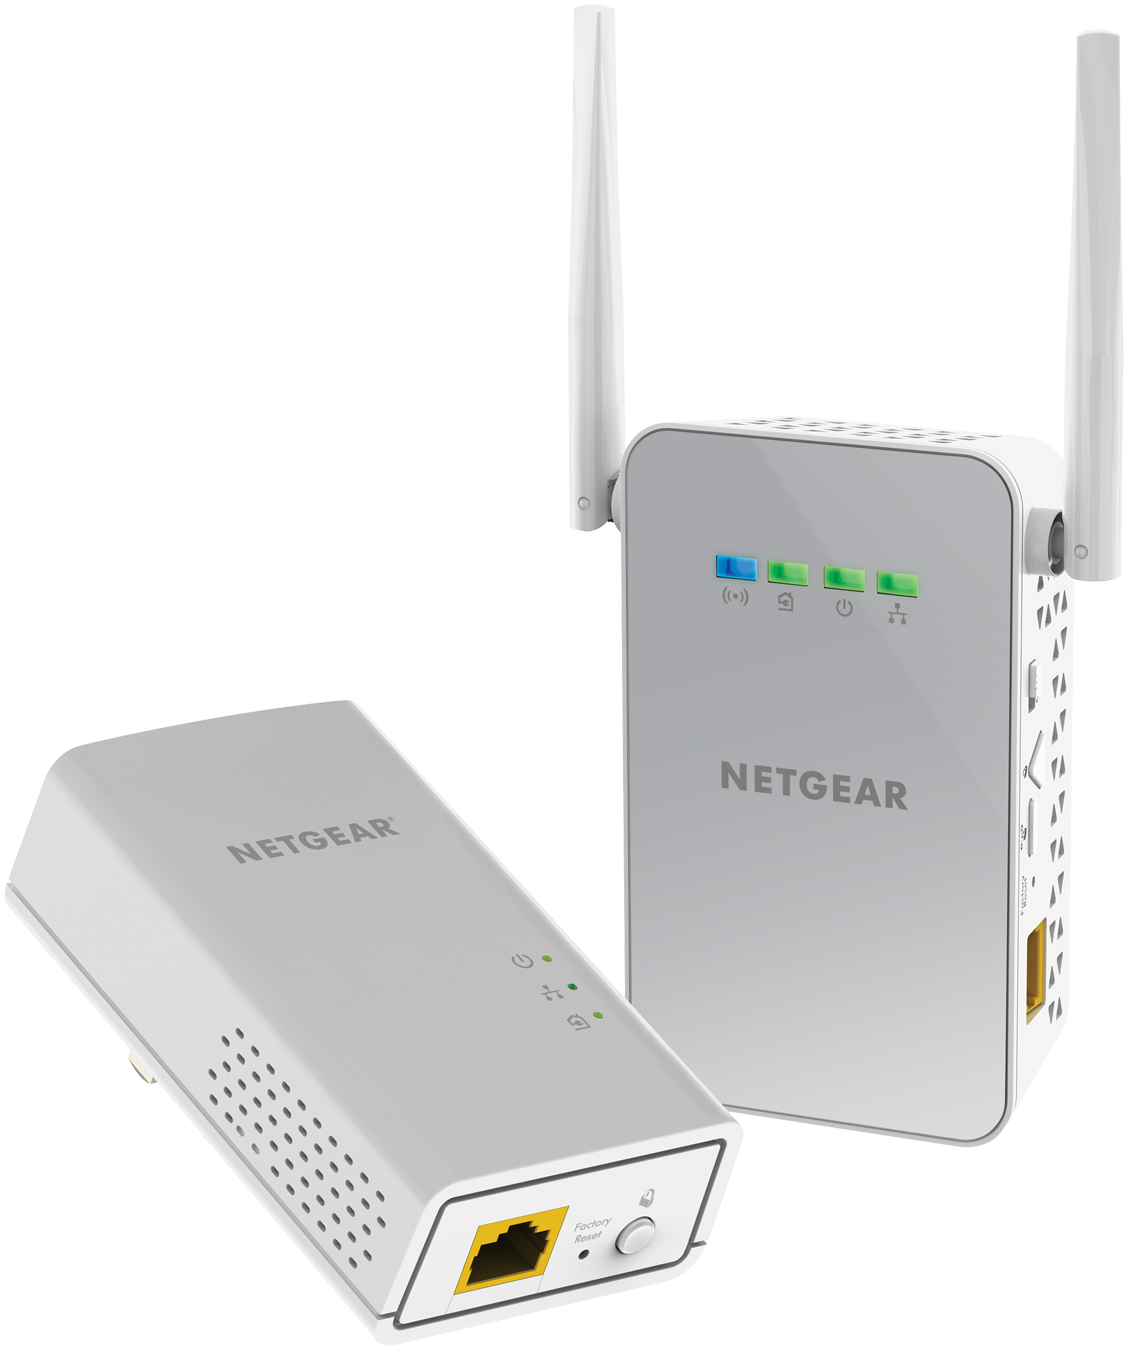 medium resolution of use your existing electrical wiring to extend your wifi internet access to any room in your house just plug the powerline adapter into your modem or router